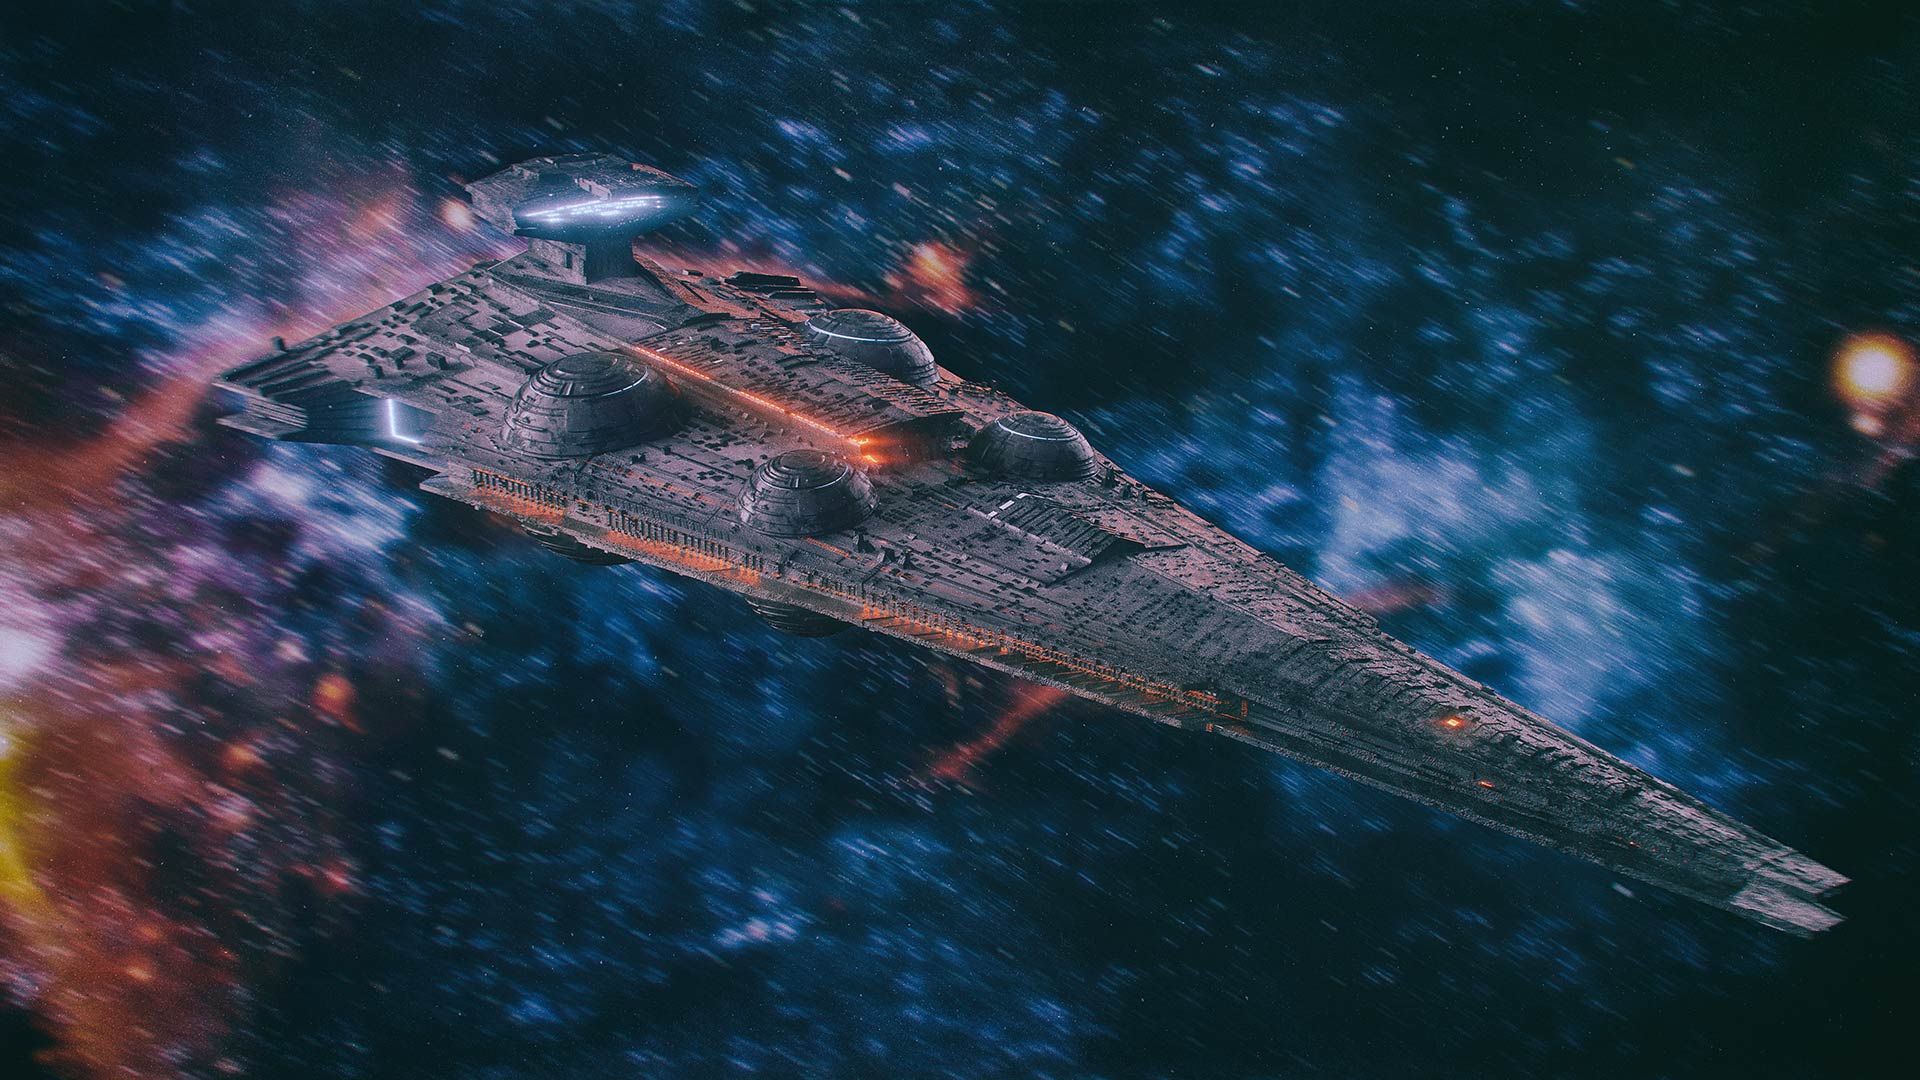 53-301115-interdictor-cruiser-star-destroyer-clas-1920x1440-Q44.jpg